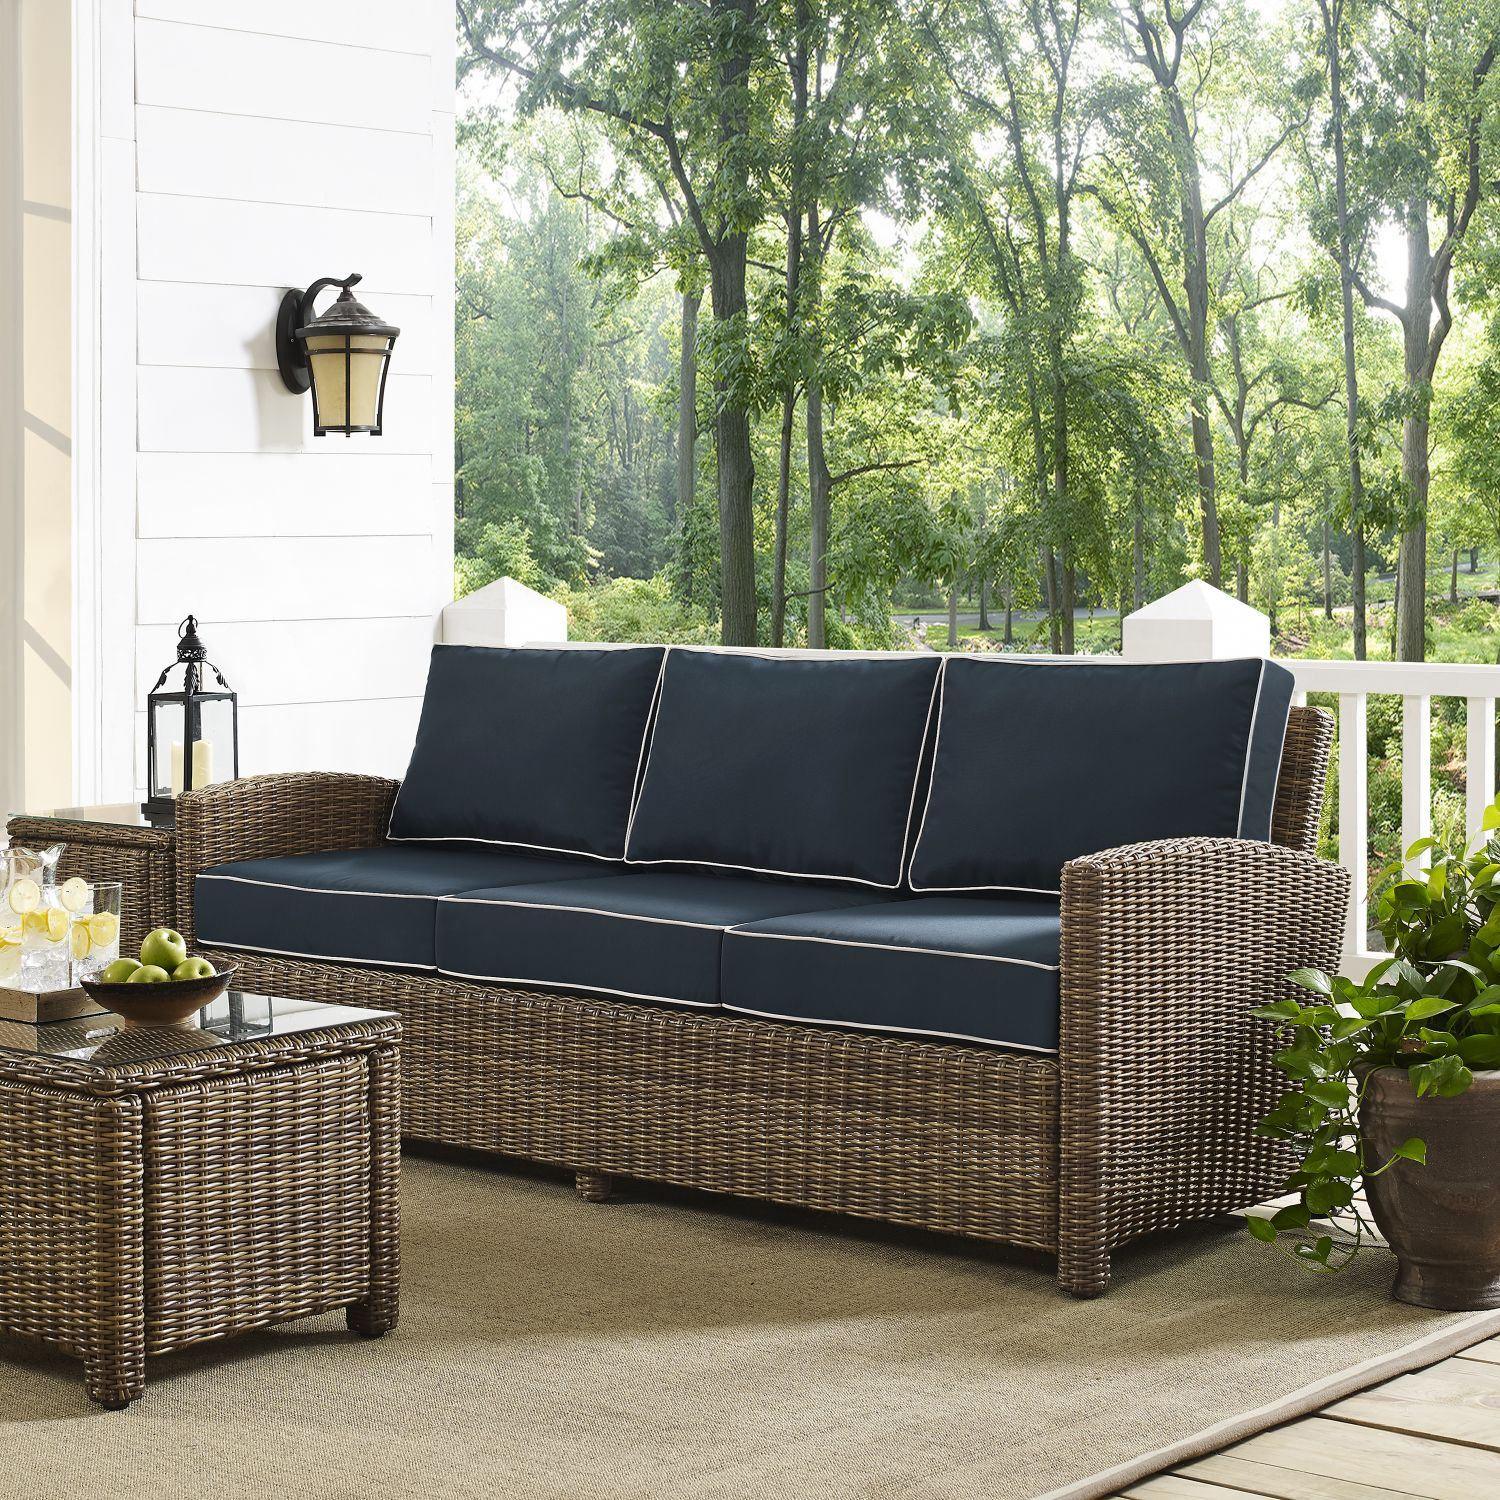 Picture of BRADENTON SOFA WITH NAVY CUSHIONS